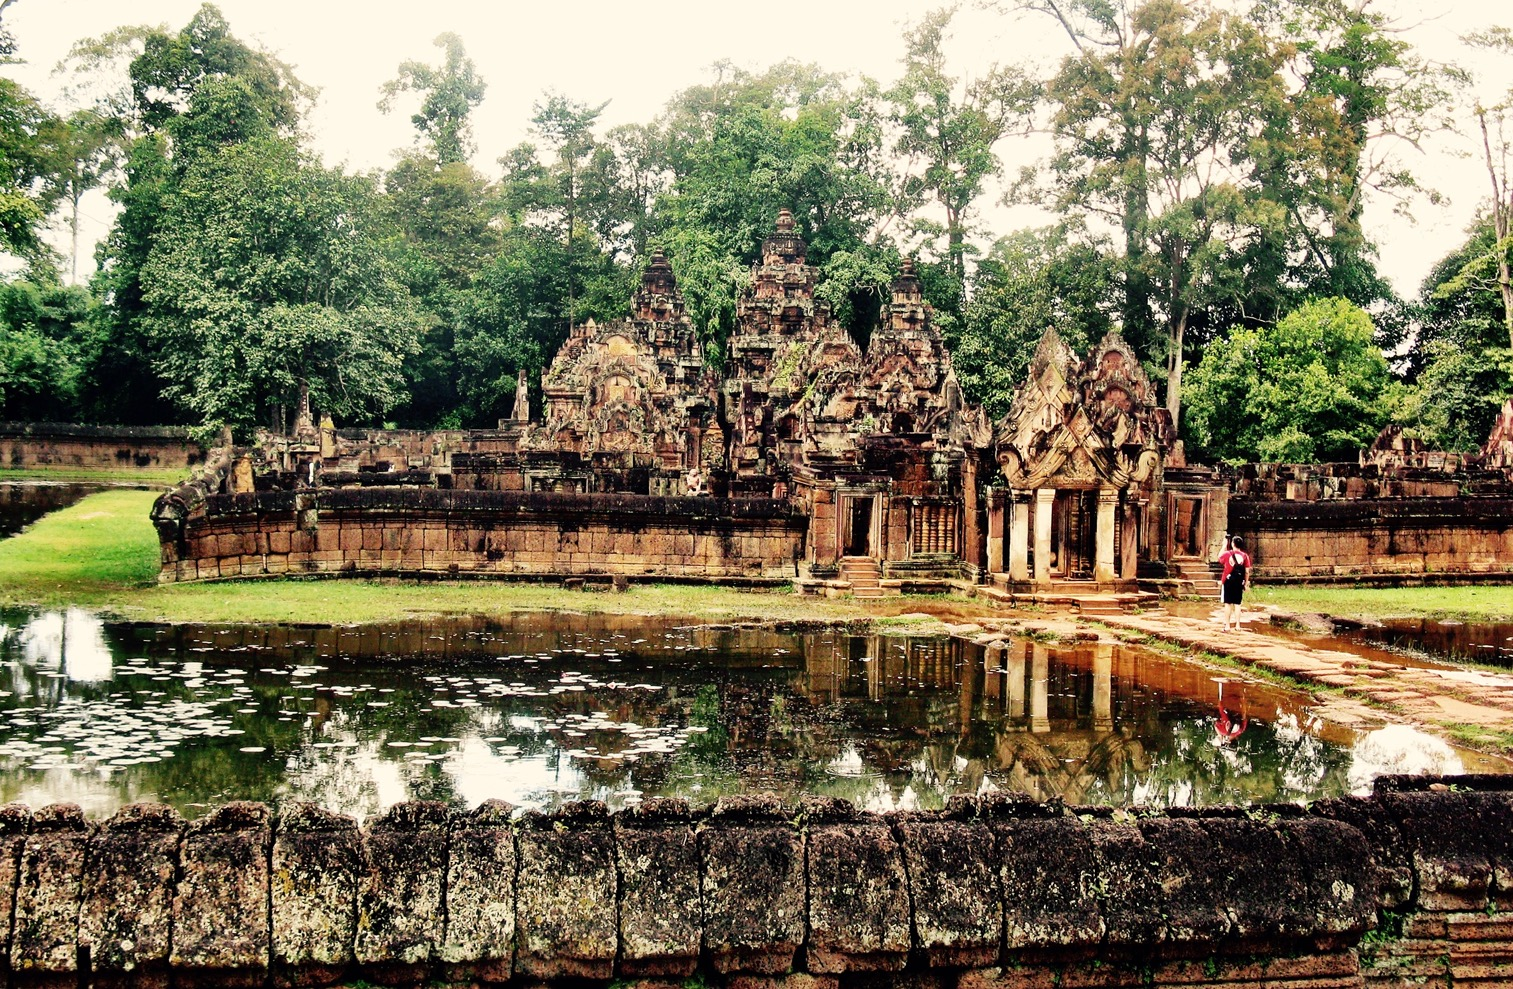 Banteay Srei, with its carvings from Hindu mythology on its pink walls, is like something out of a storybook